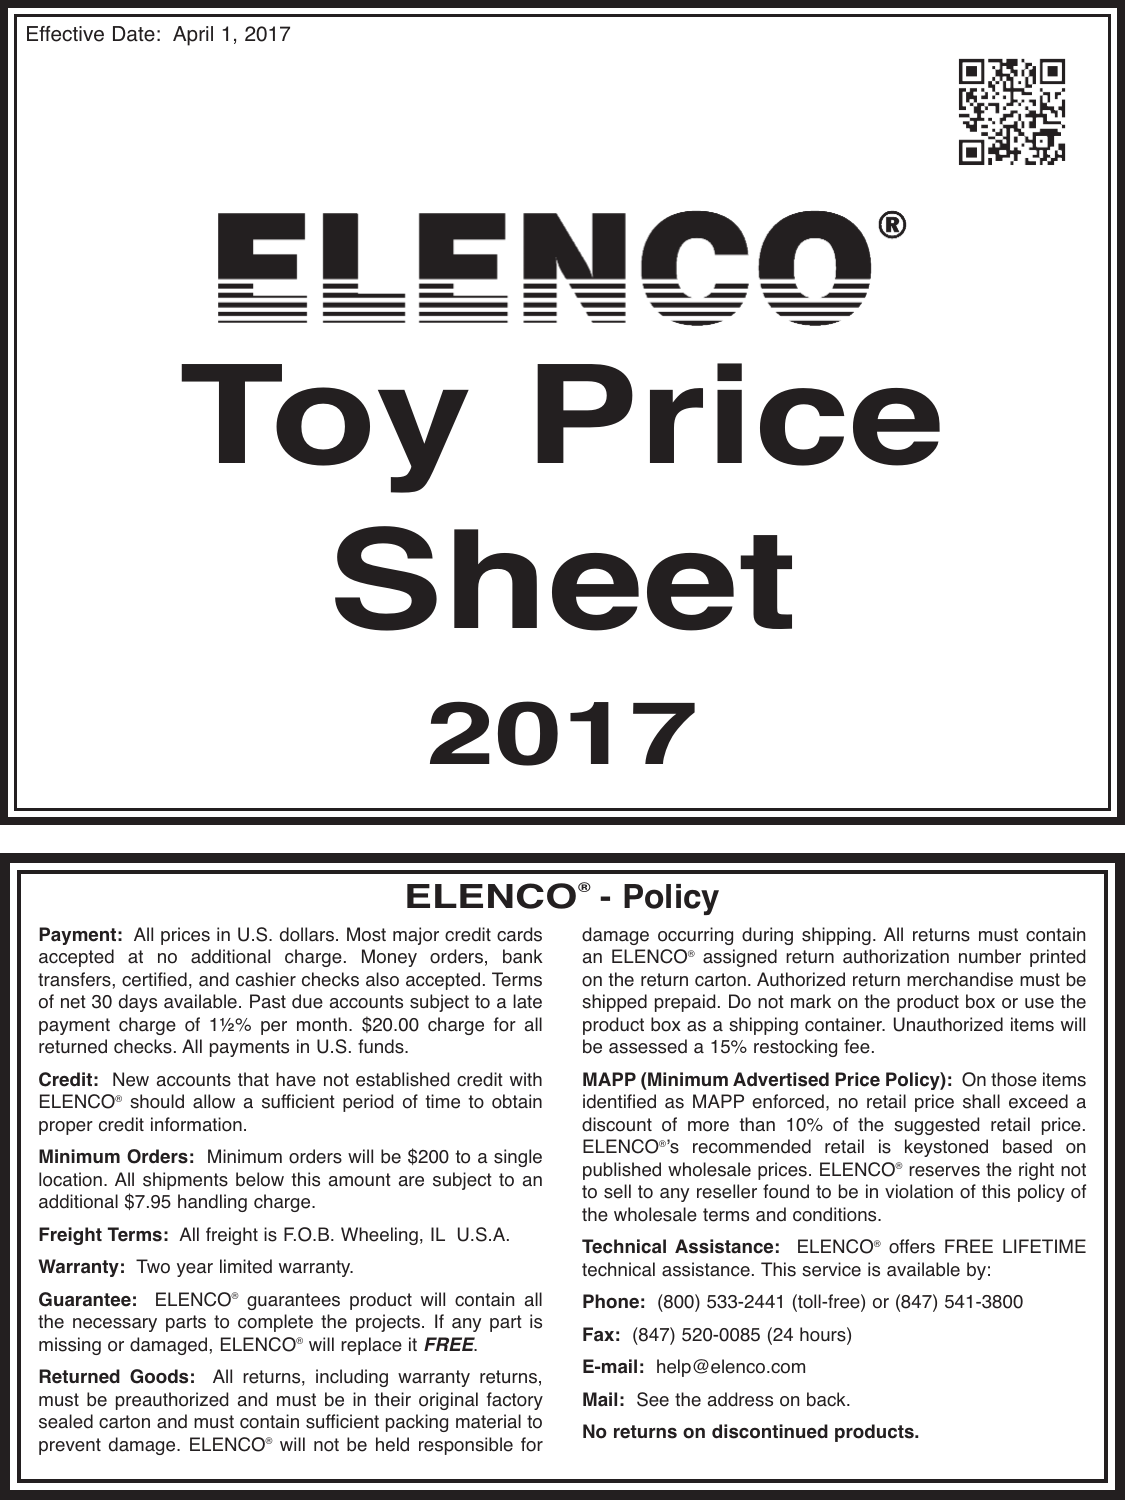 Toy Price Sheet 2017 300in1 Electronic Project Lab Kit Mx908 Toypricesheet20171626446679 User Guide Page 1